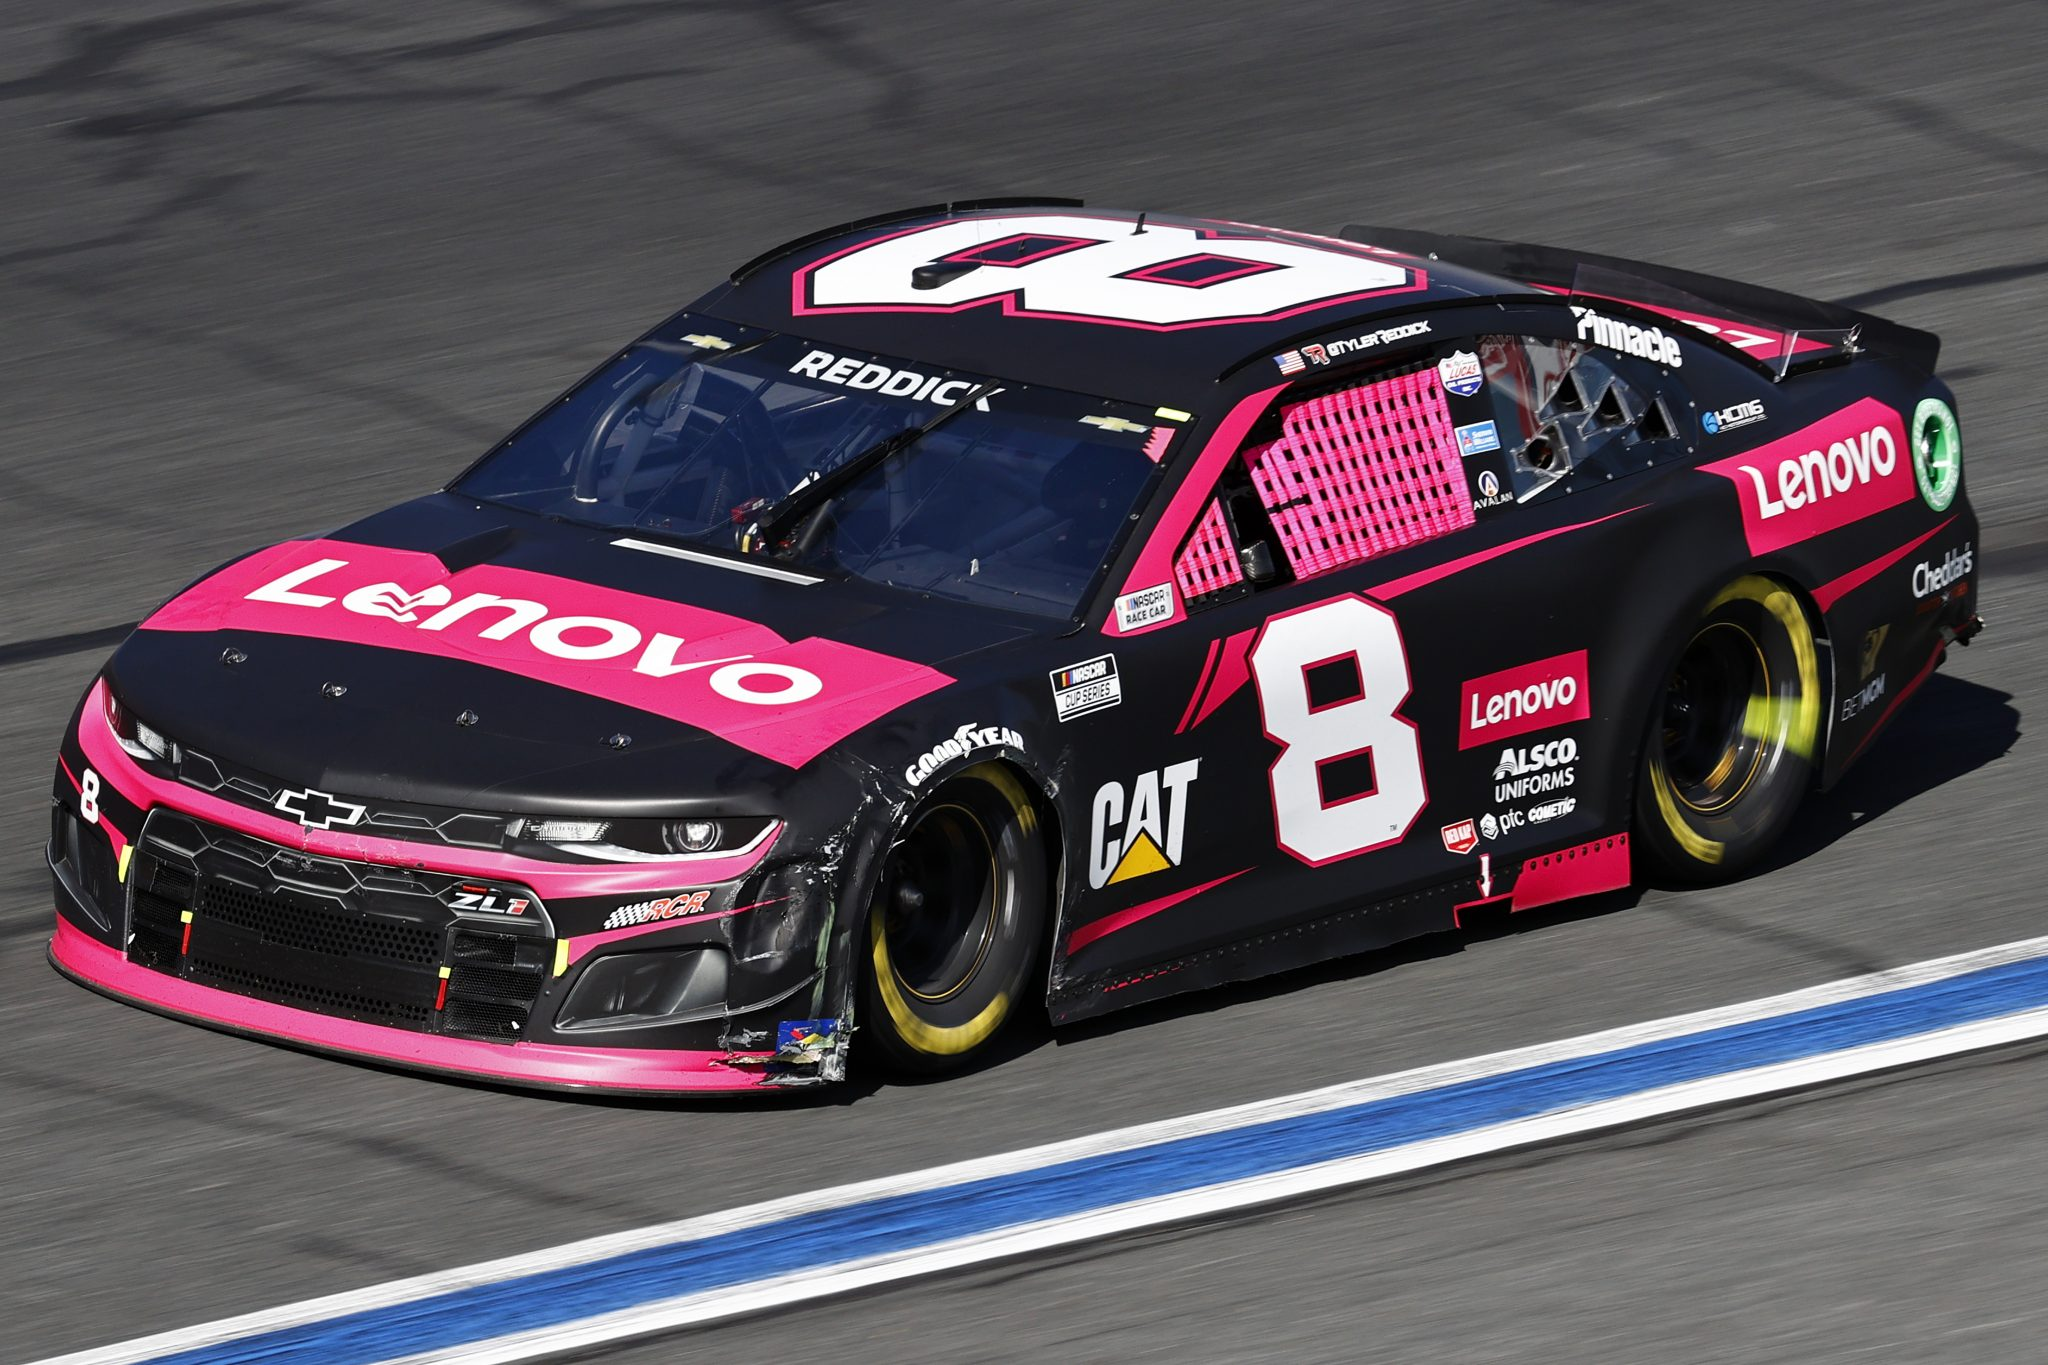 CONCORD, NORTH CAROLINA - OCTOBER 10: Tyler Reddick, driver of the #8 Lenovo Chevrolet, drives during the NASCAR Cup Series Bank of America ROVAL 400 at Charlotte Motor Speedway on October 10, 2021 in Concord, North Carolina. (Photo by Jared C. Tilton/Getty Images) | Getty Images